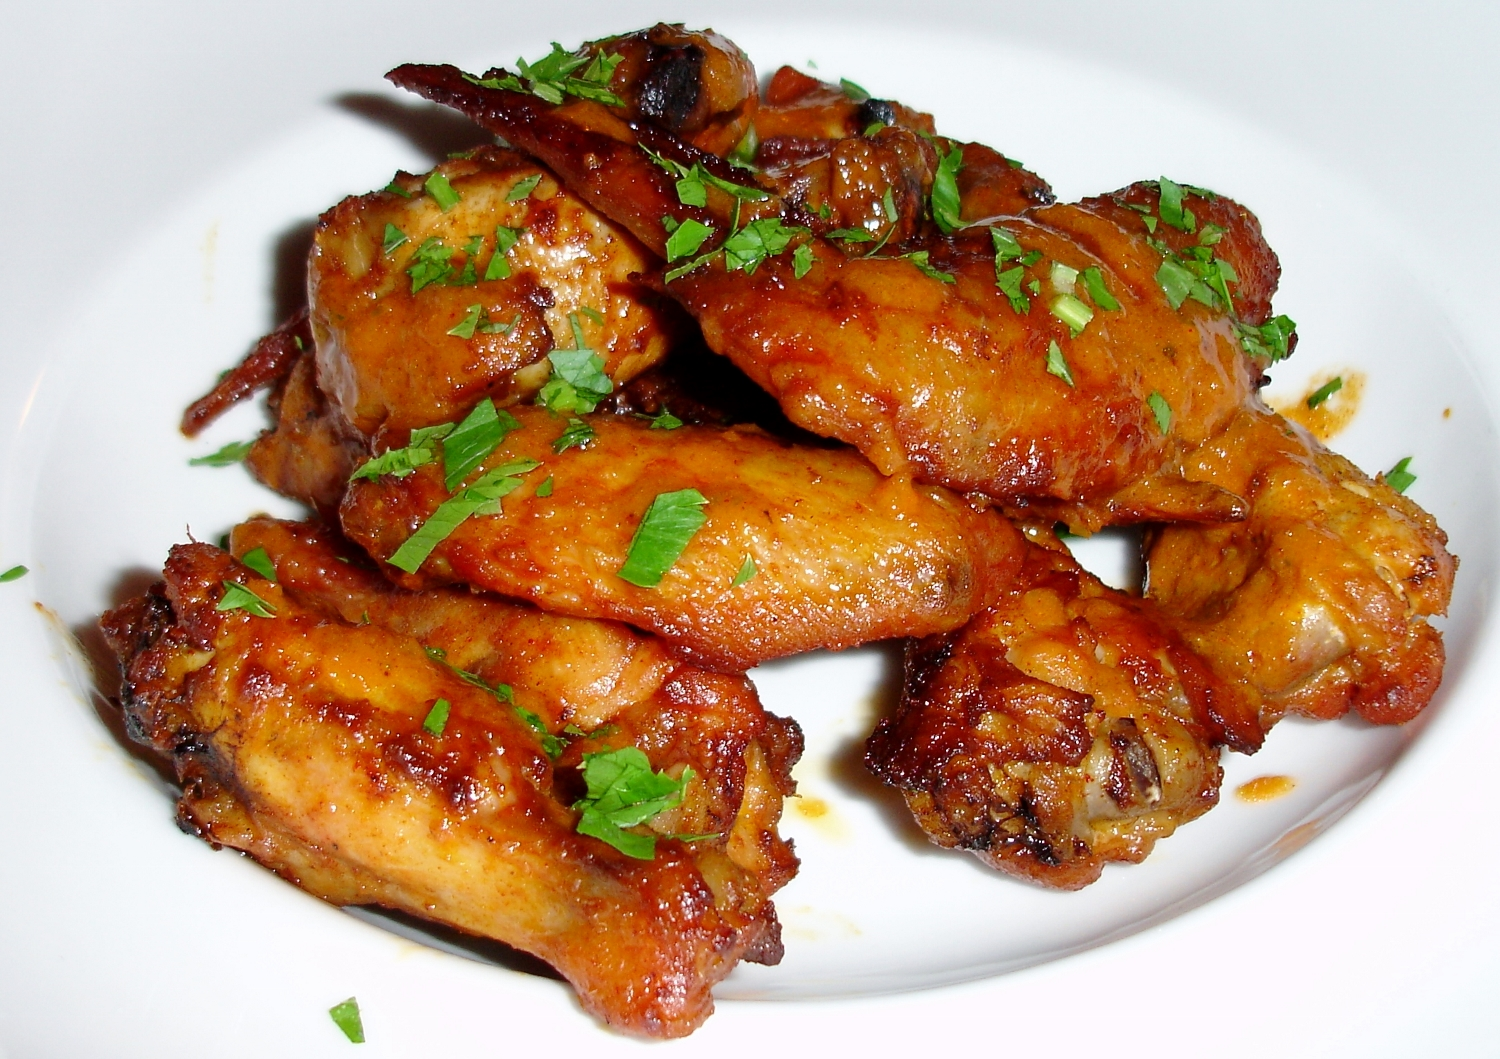 Chicken wings cooked in chicken fat, dressed with hot sauce, sprinkled with minced celery leaves